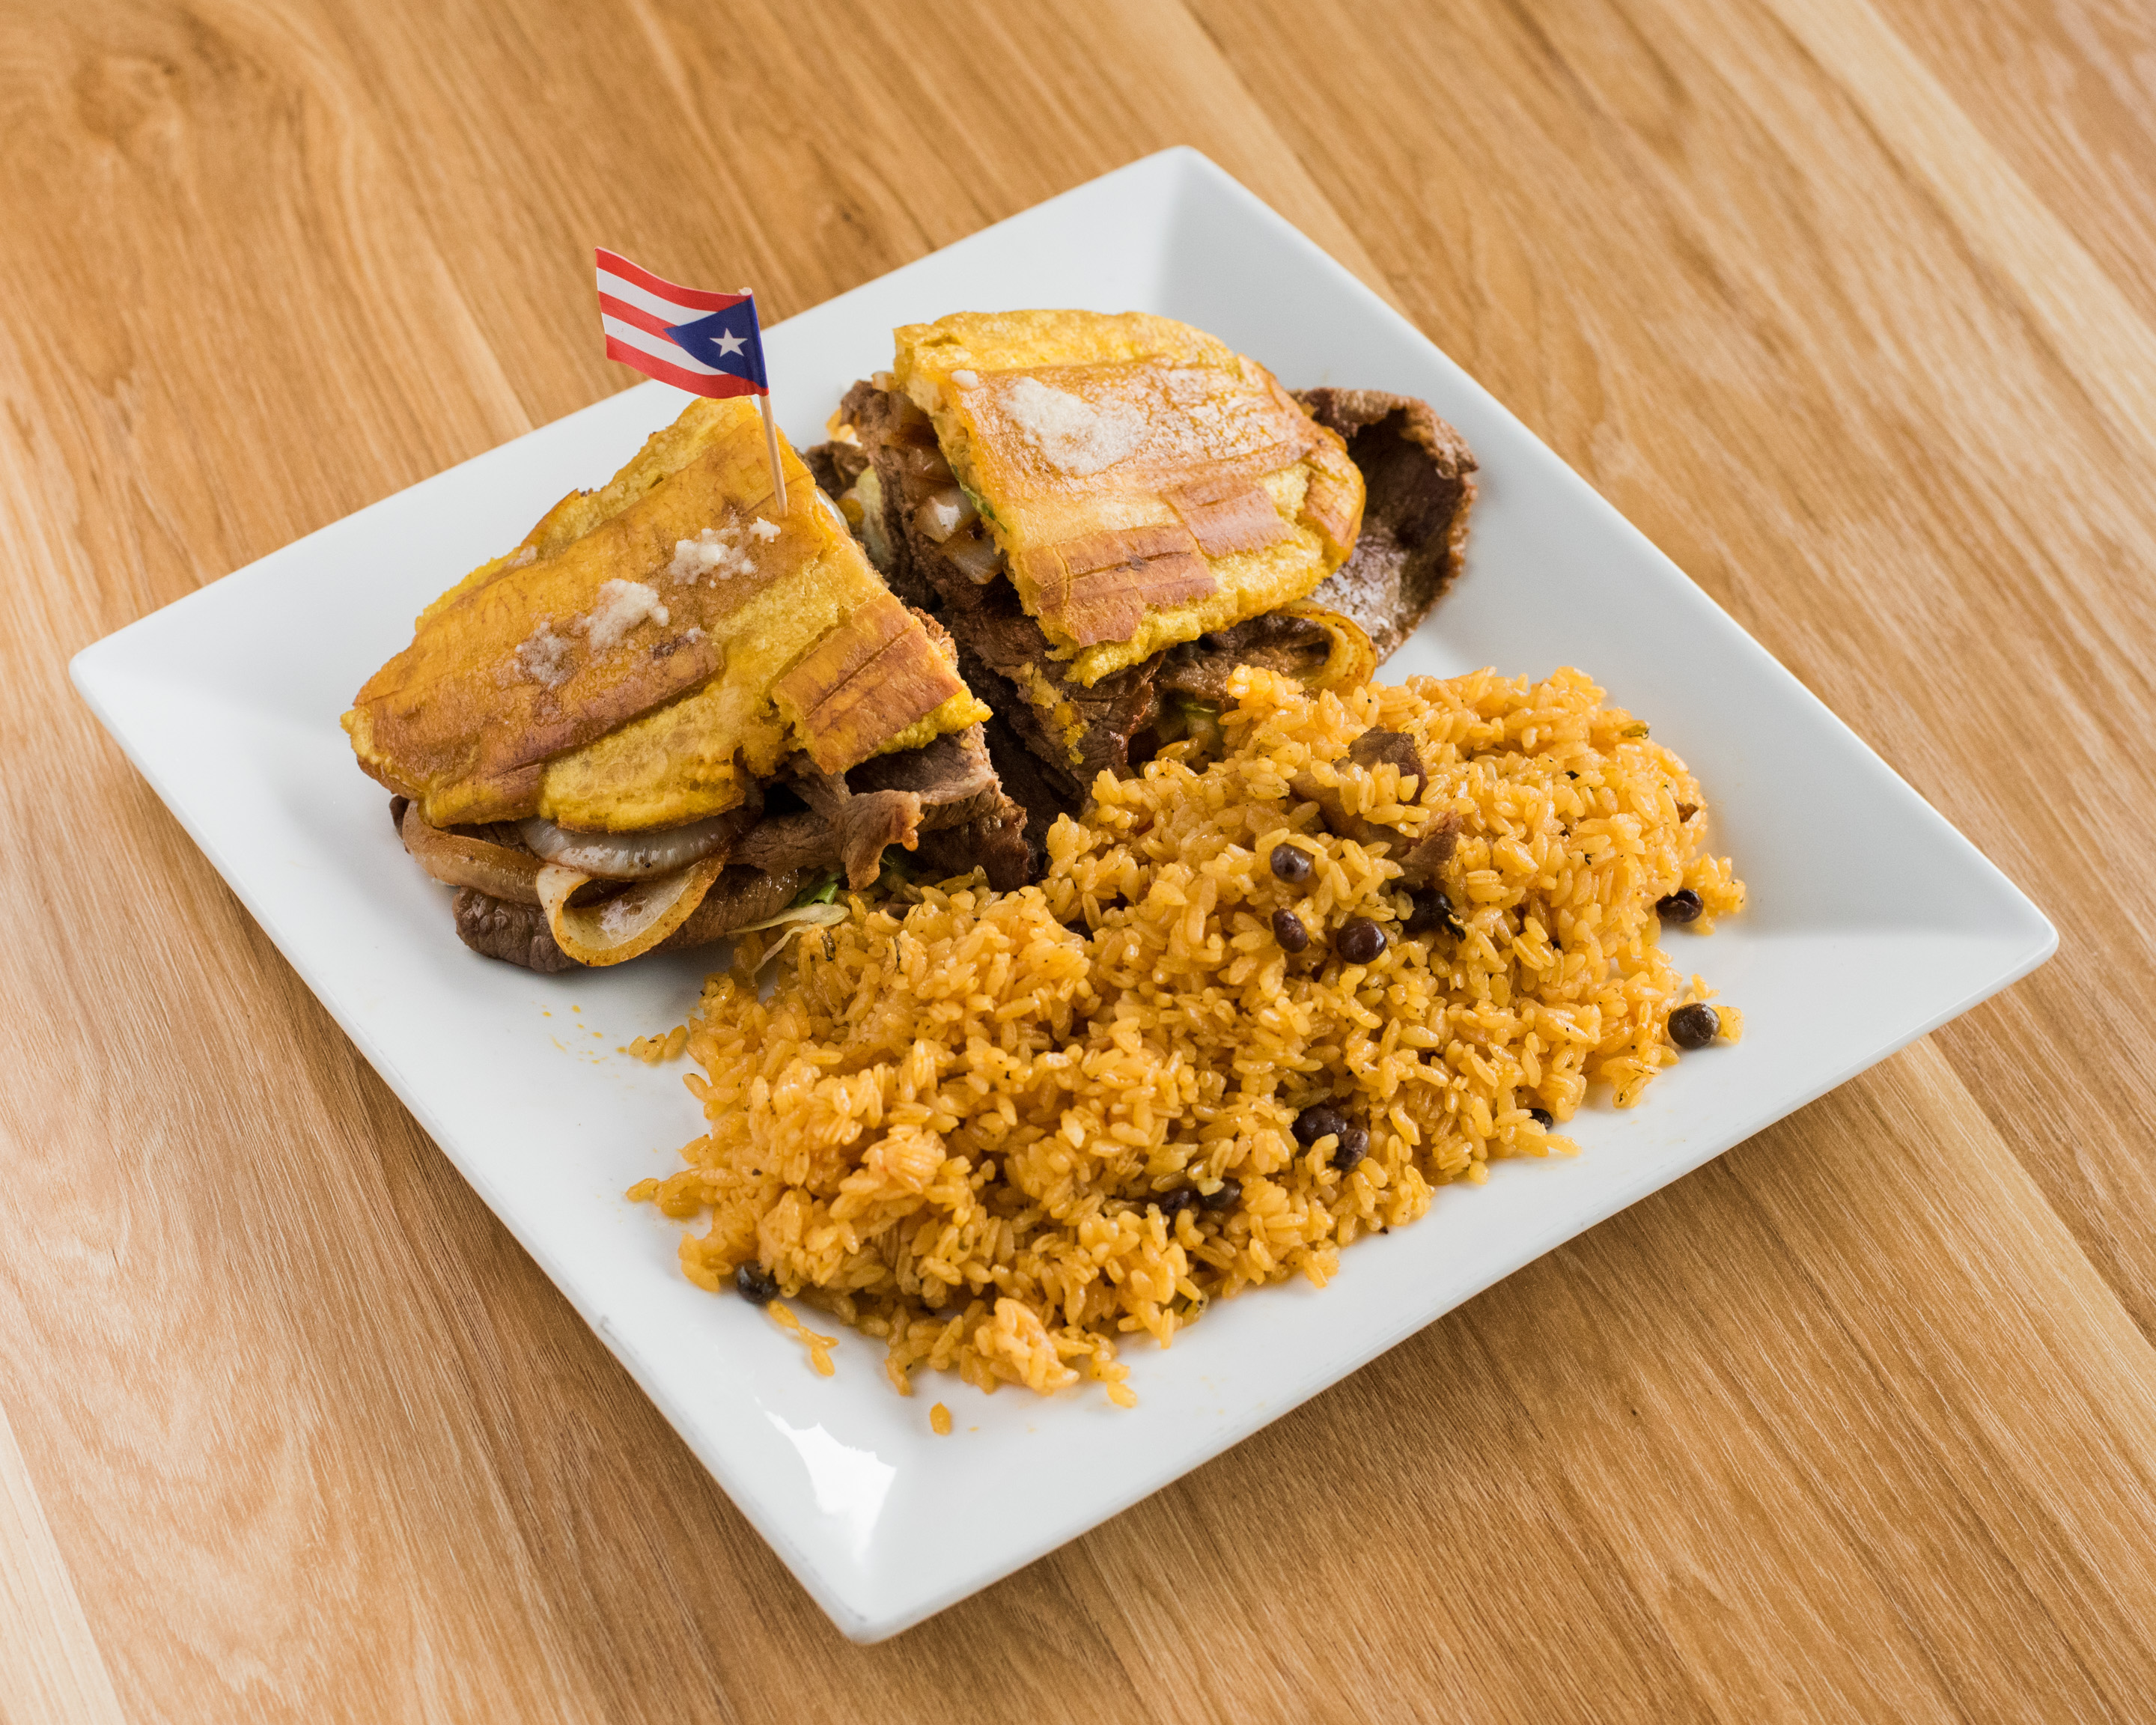 A jibarito sandwich with a side of rice.